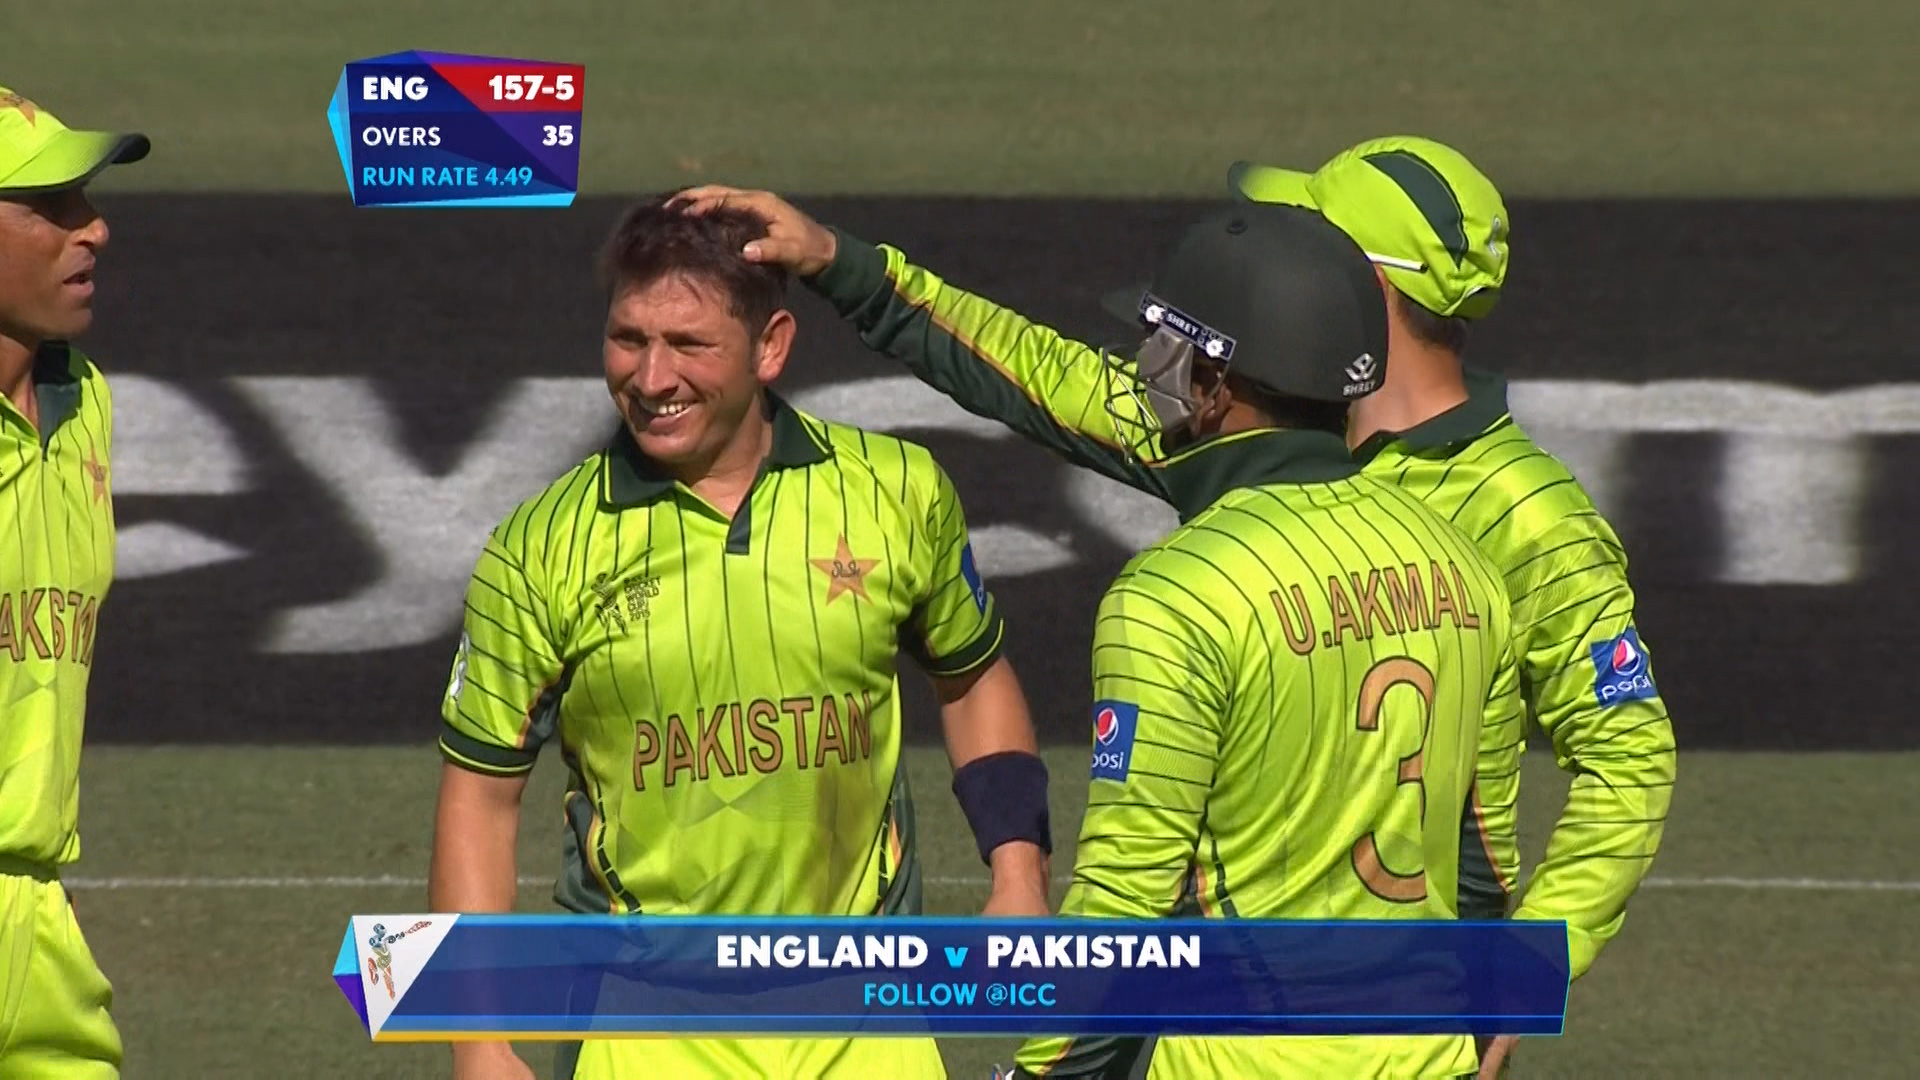 Top Moments – Eng vs Pak